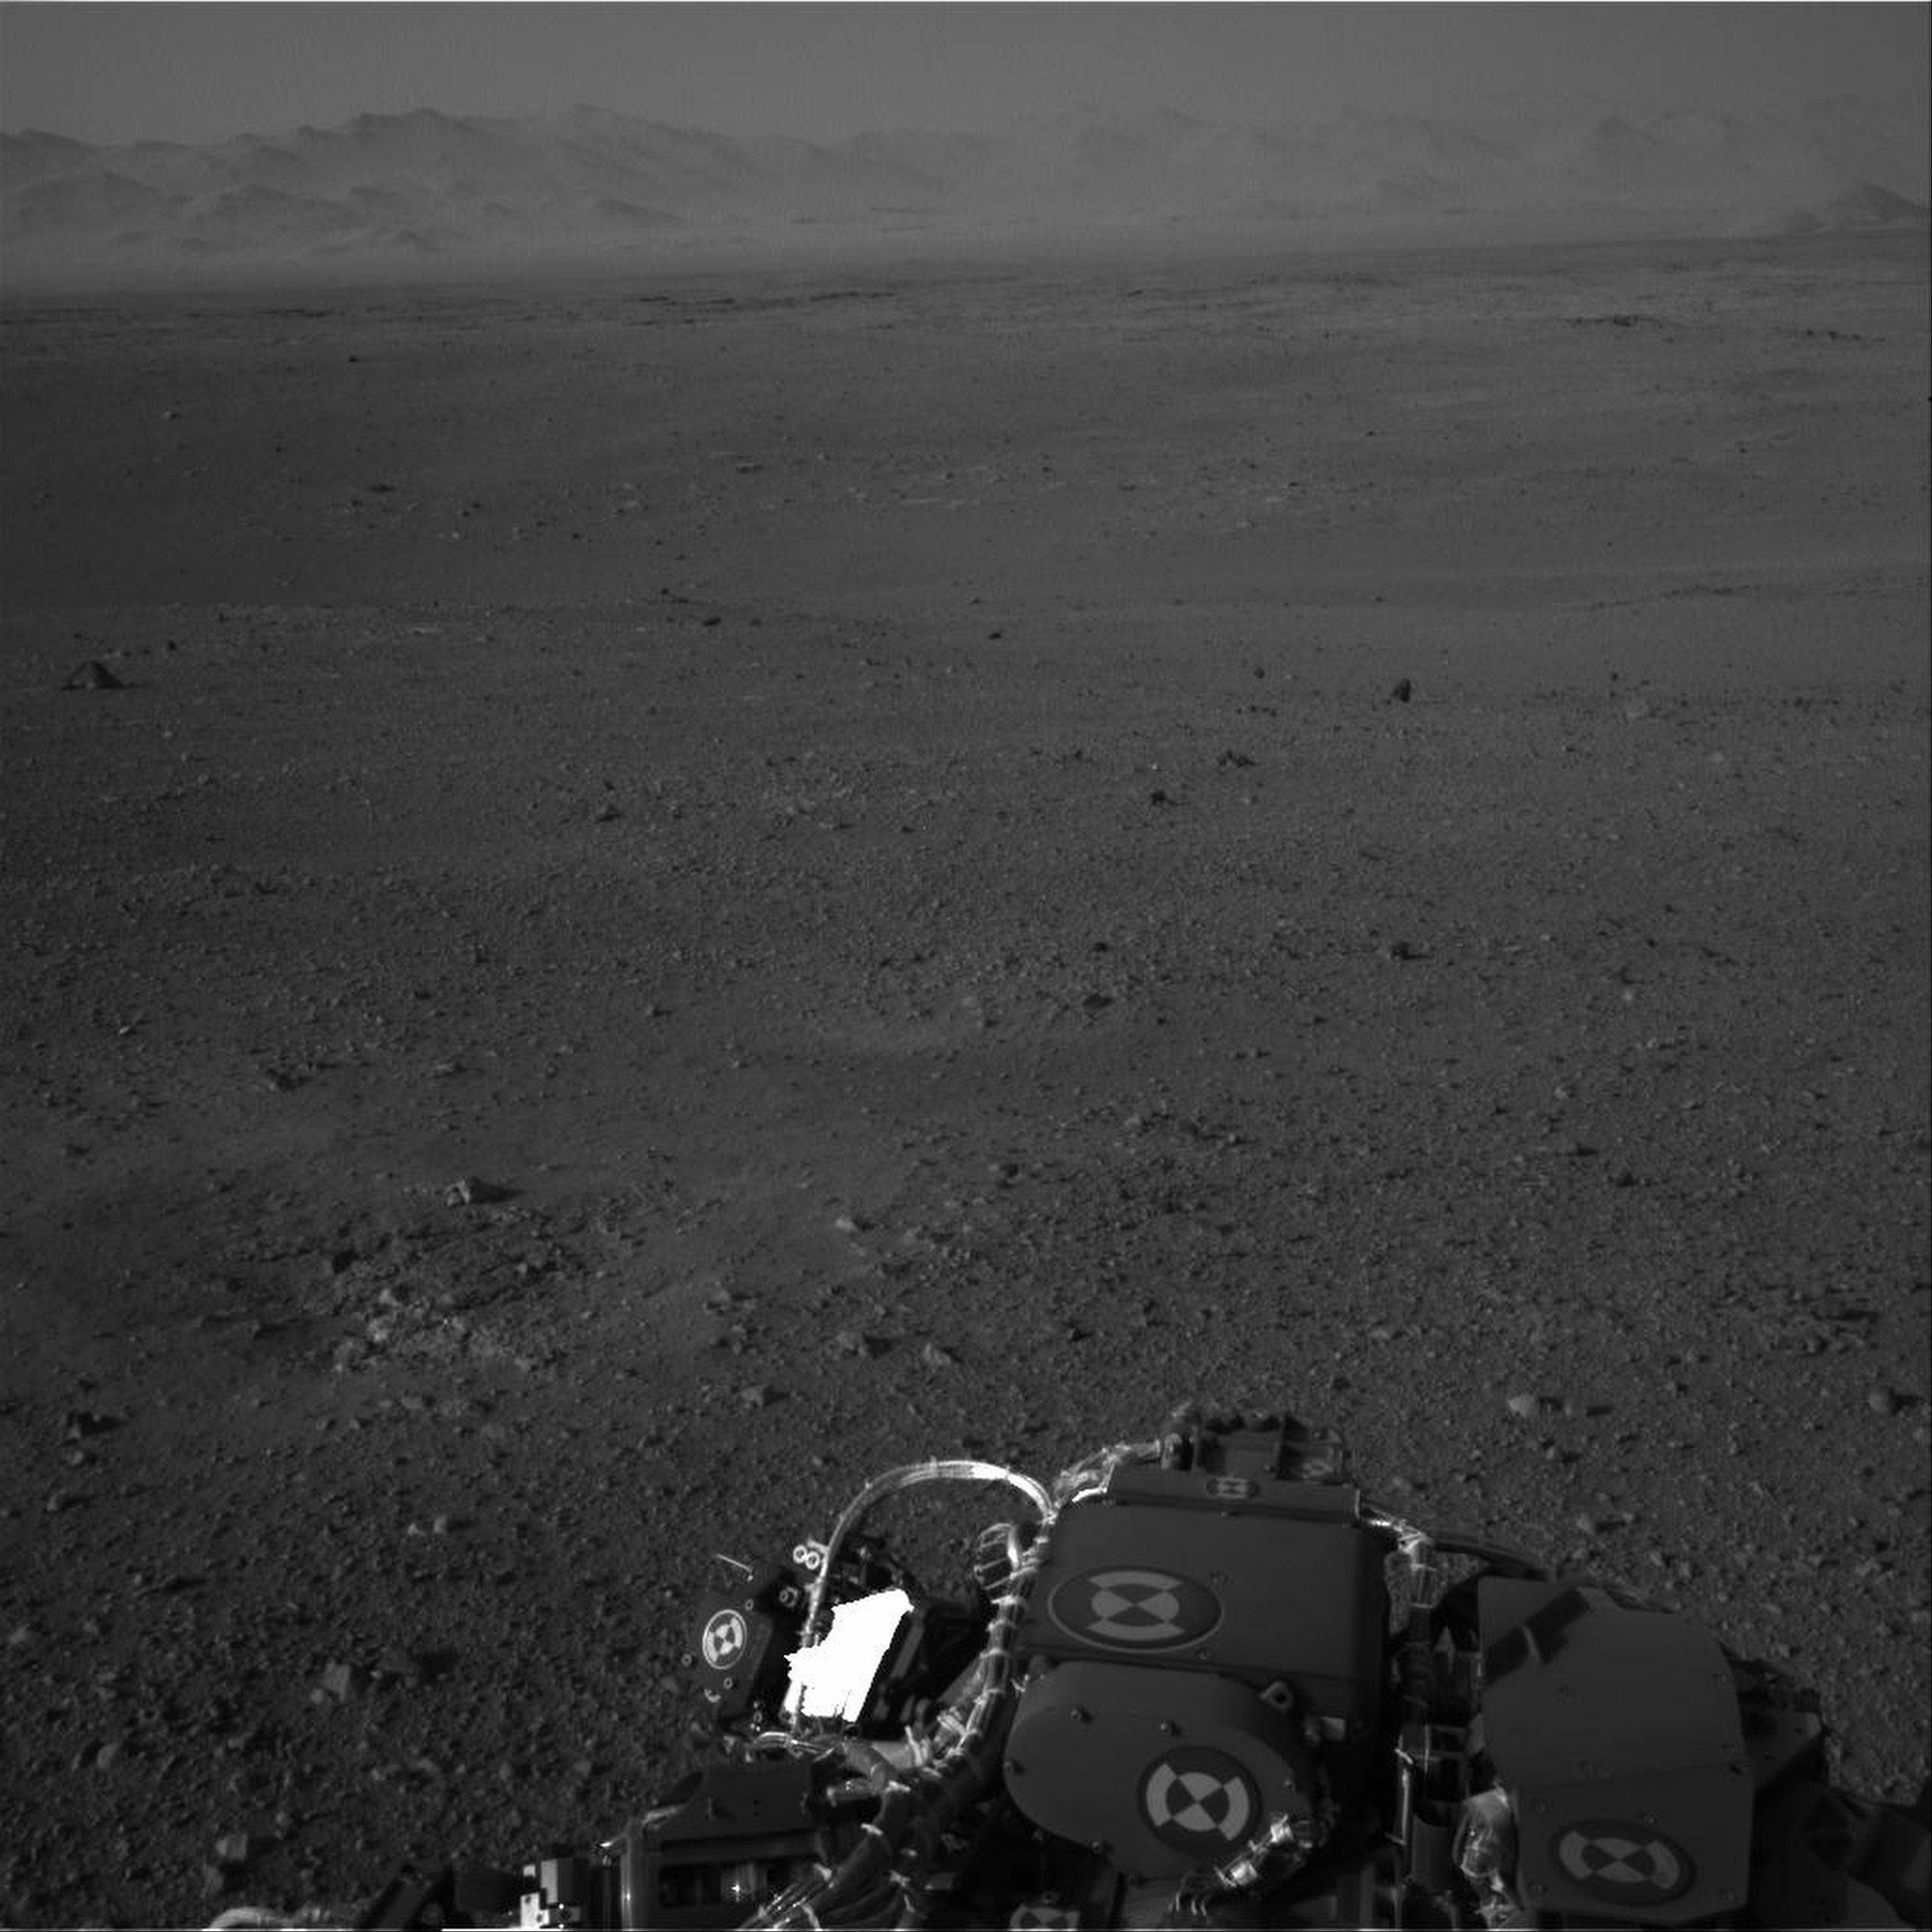 This image released by NASA on Wednesday Aug. 8, 2012 taken by cameras aboard the Curiosity rover shows the Martian horizon. It's one of dozens of images that will be made into a panorama. Curiosity landed on August 5, 2012 on a two-year mission to study whether its landing site ever could have supported microbial life.